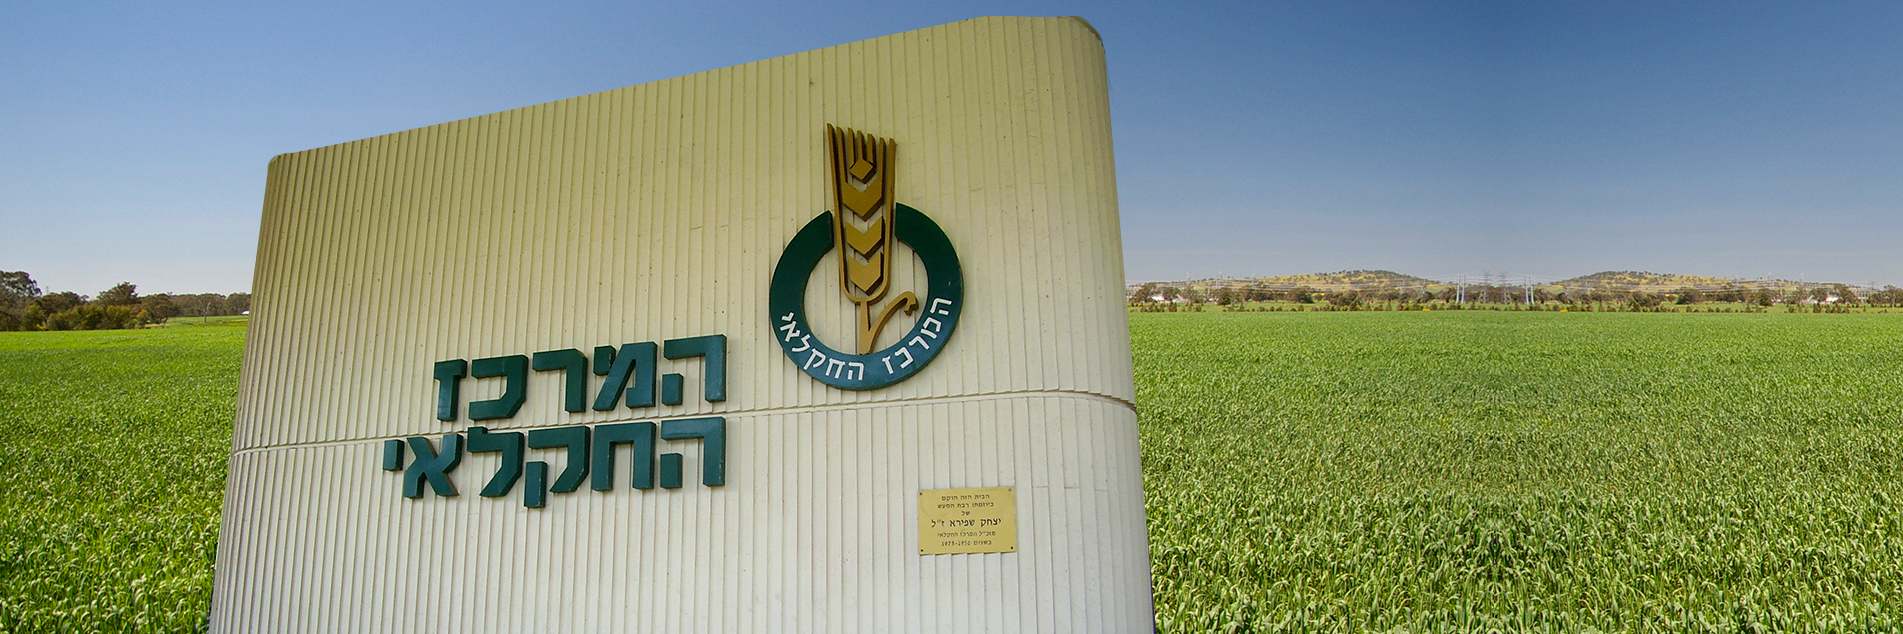 Agricultural Center Signage by Agricultural movement